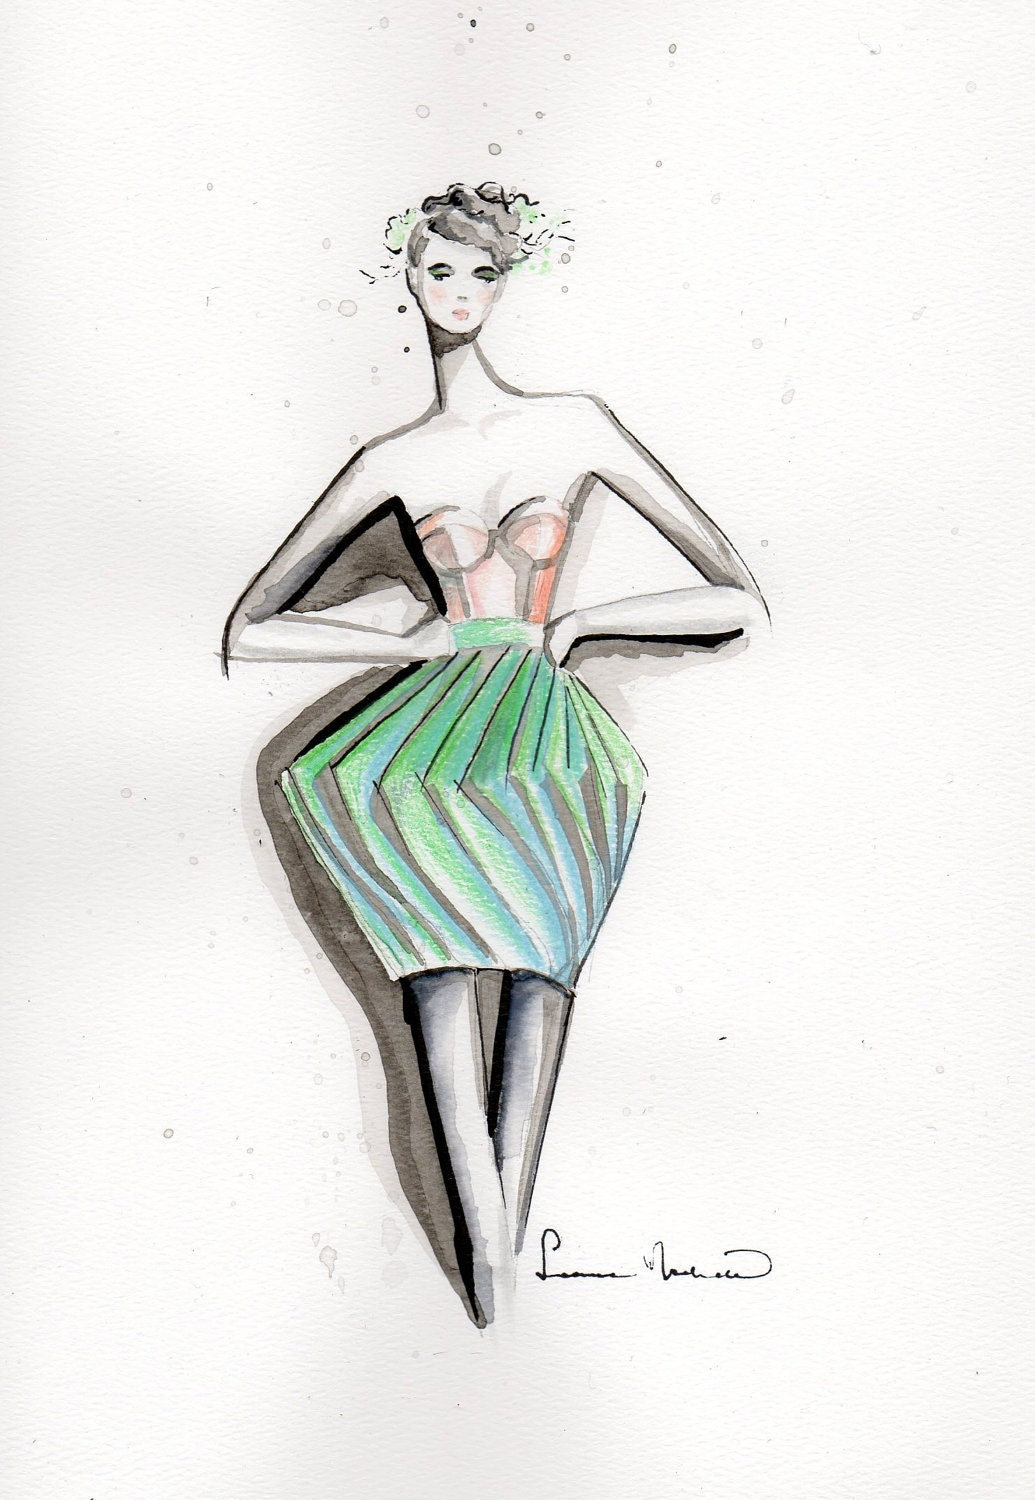 fashion illustration by leanimal on etsy